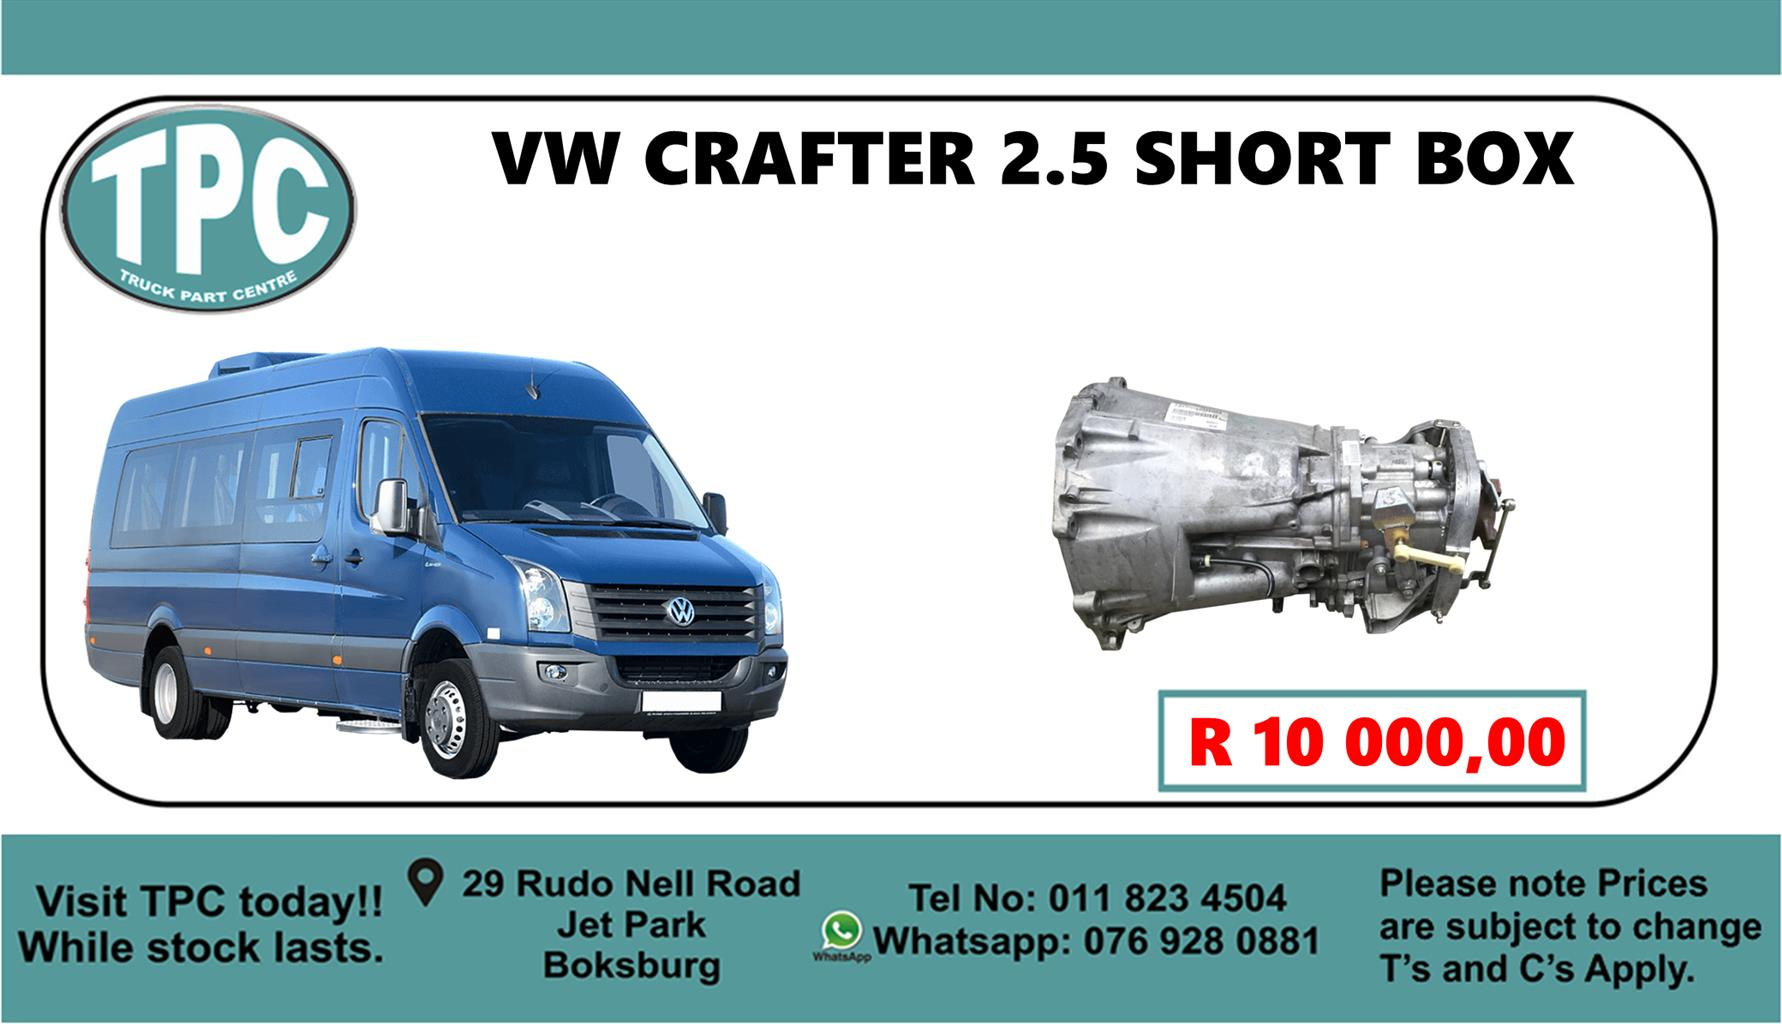 VW Crafter 2.5 Short Box - For Sale at TPC.